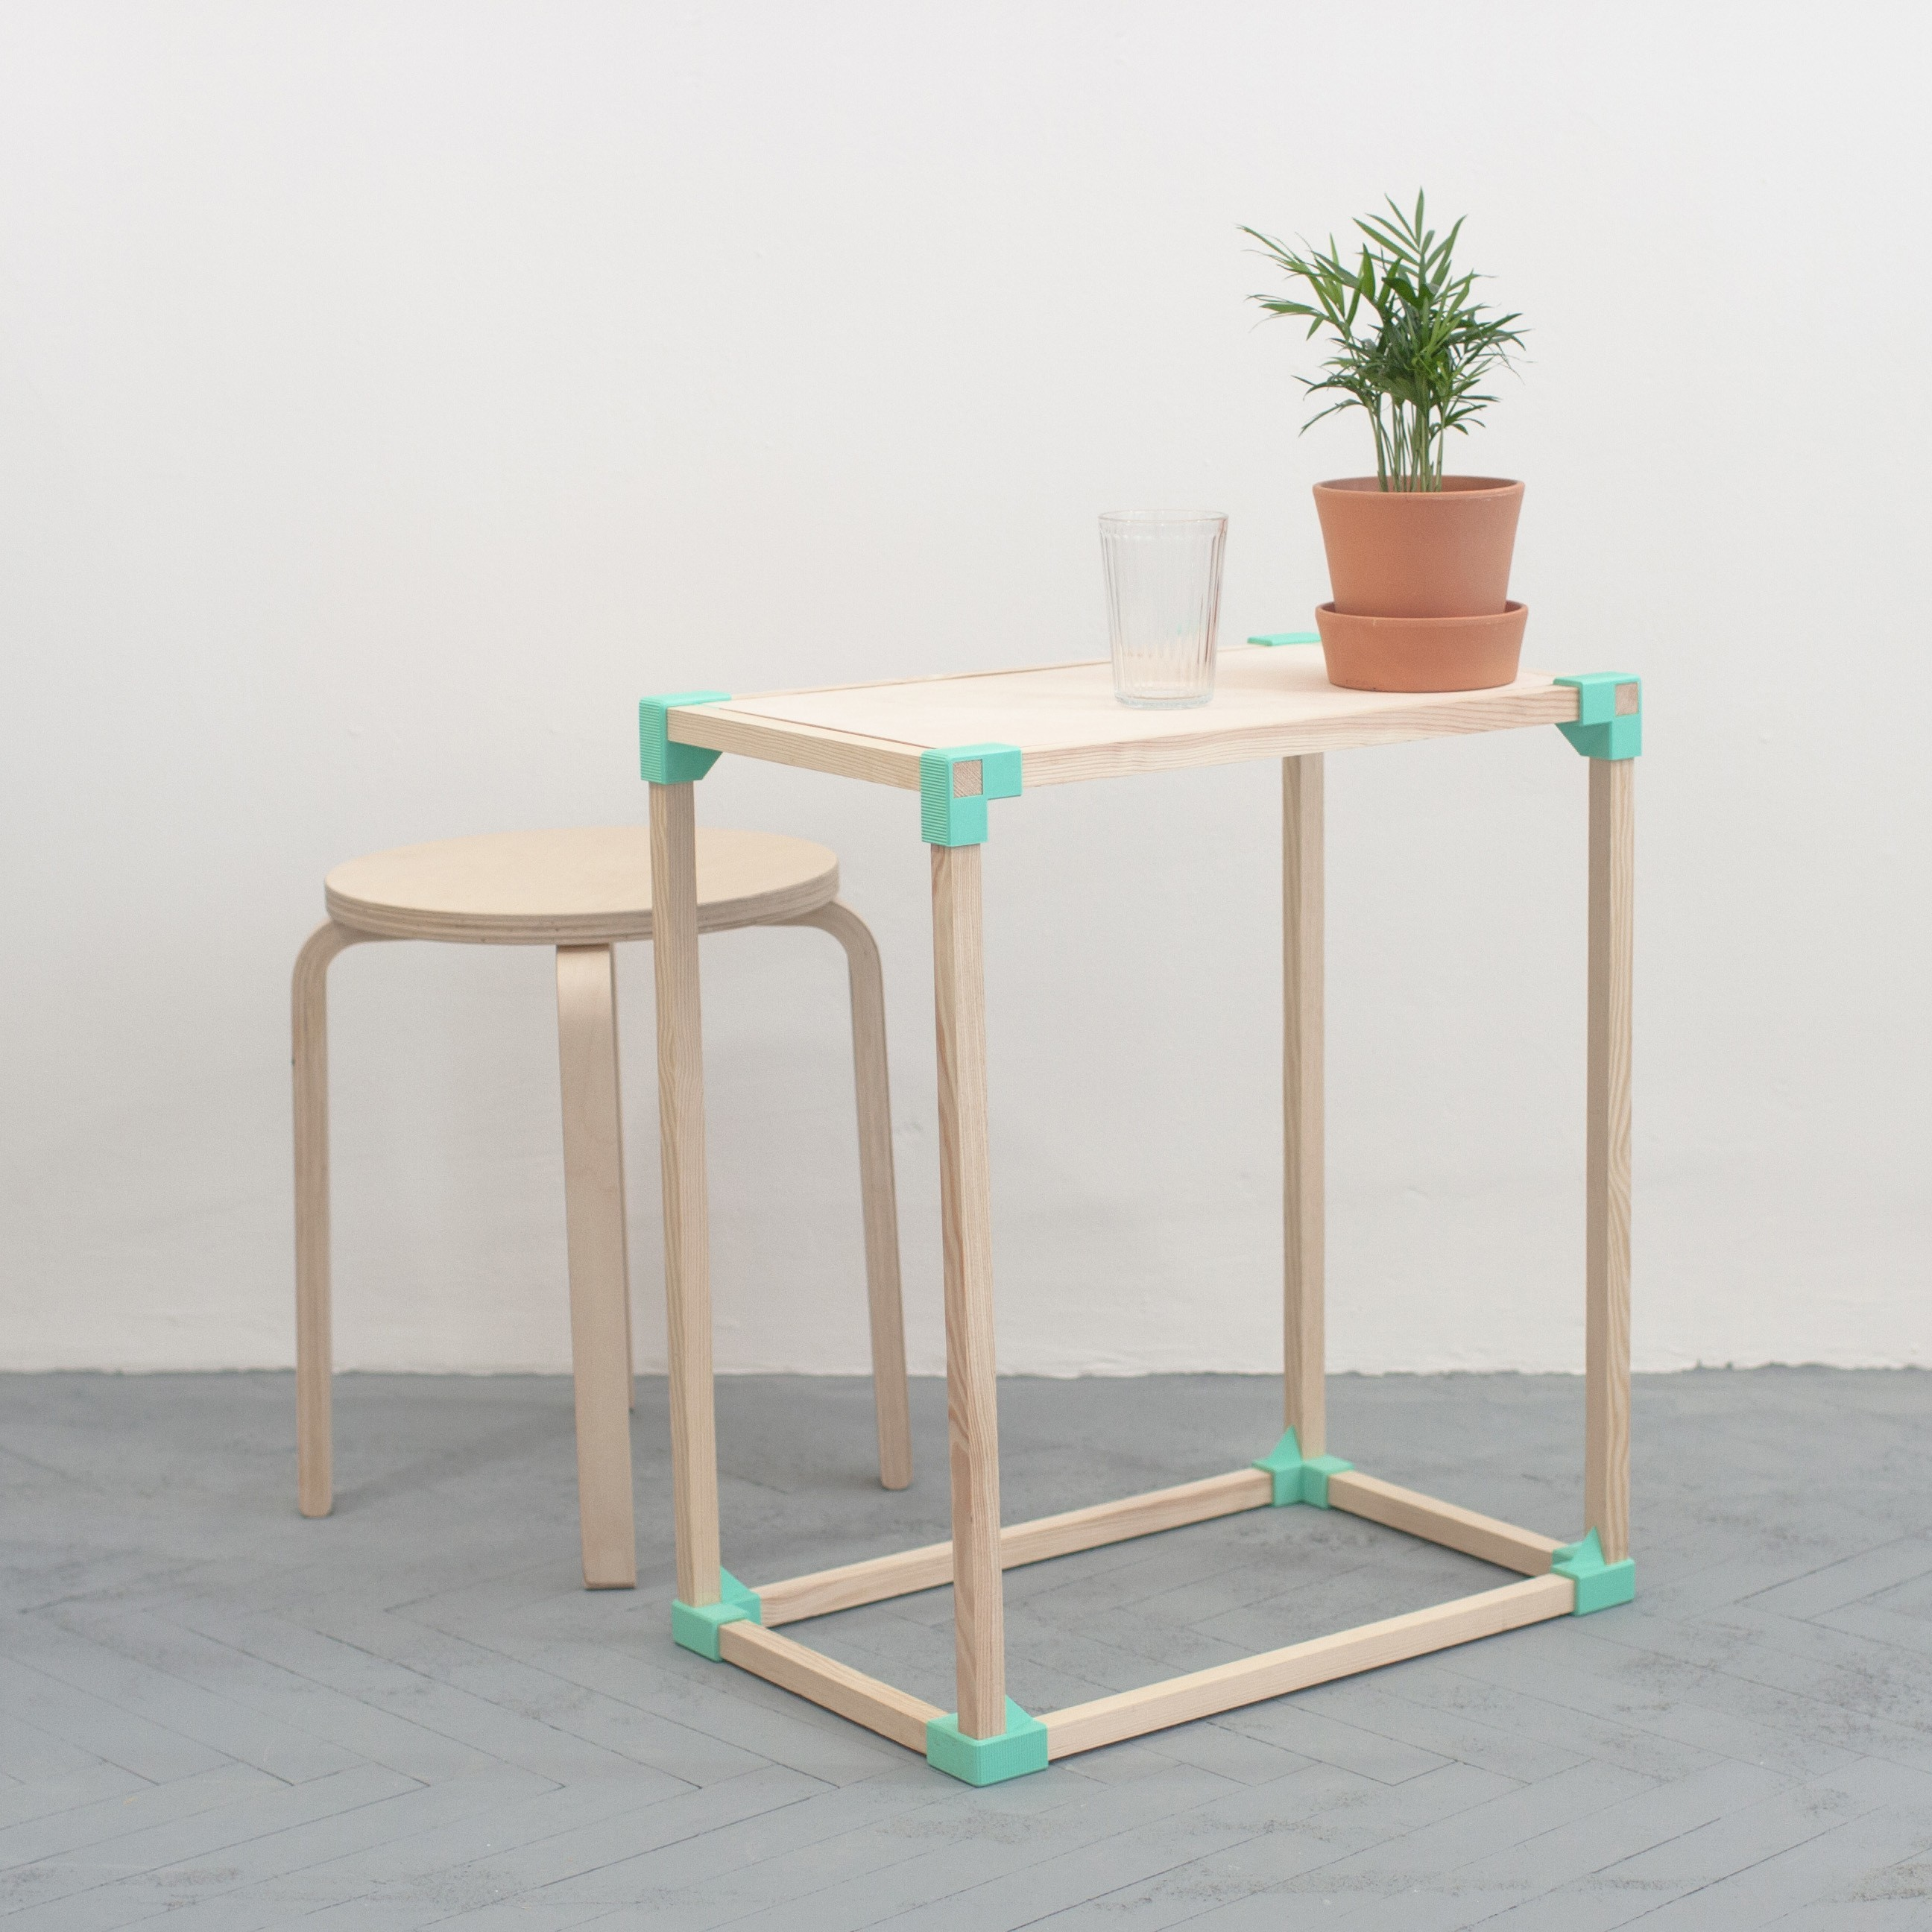 Make your own furniture thanks to 3d printing for Furniture 3d printing